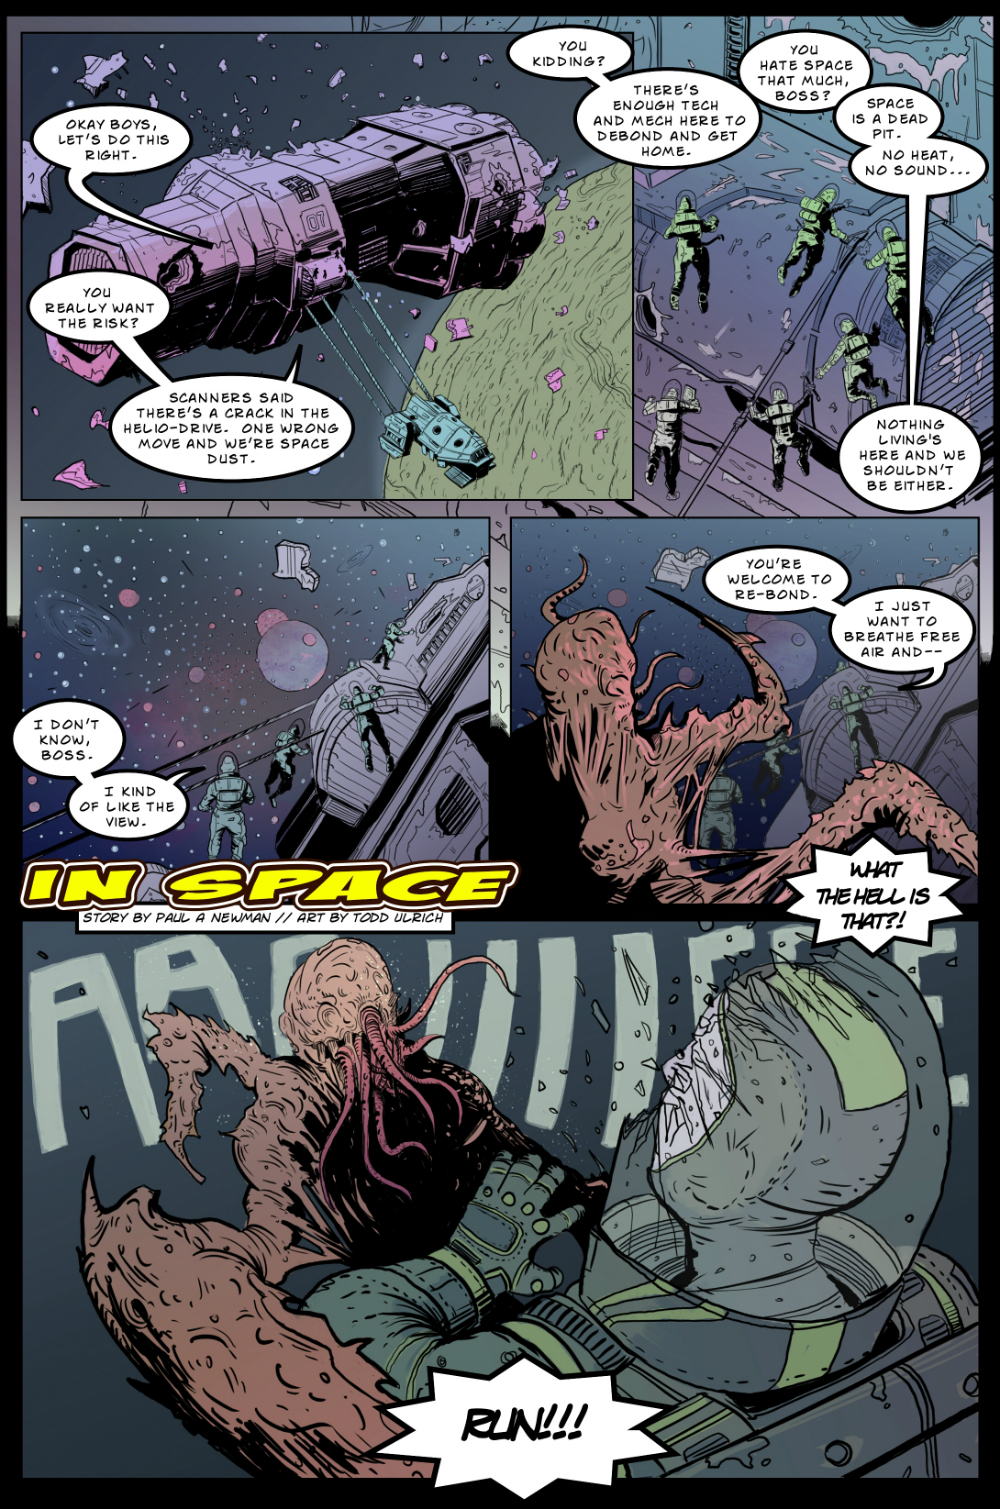 IN SPACE page 1 -- story 24 in THE BOOK OF LIES